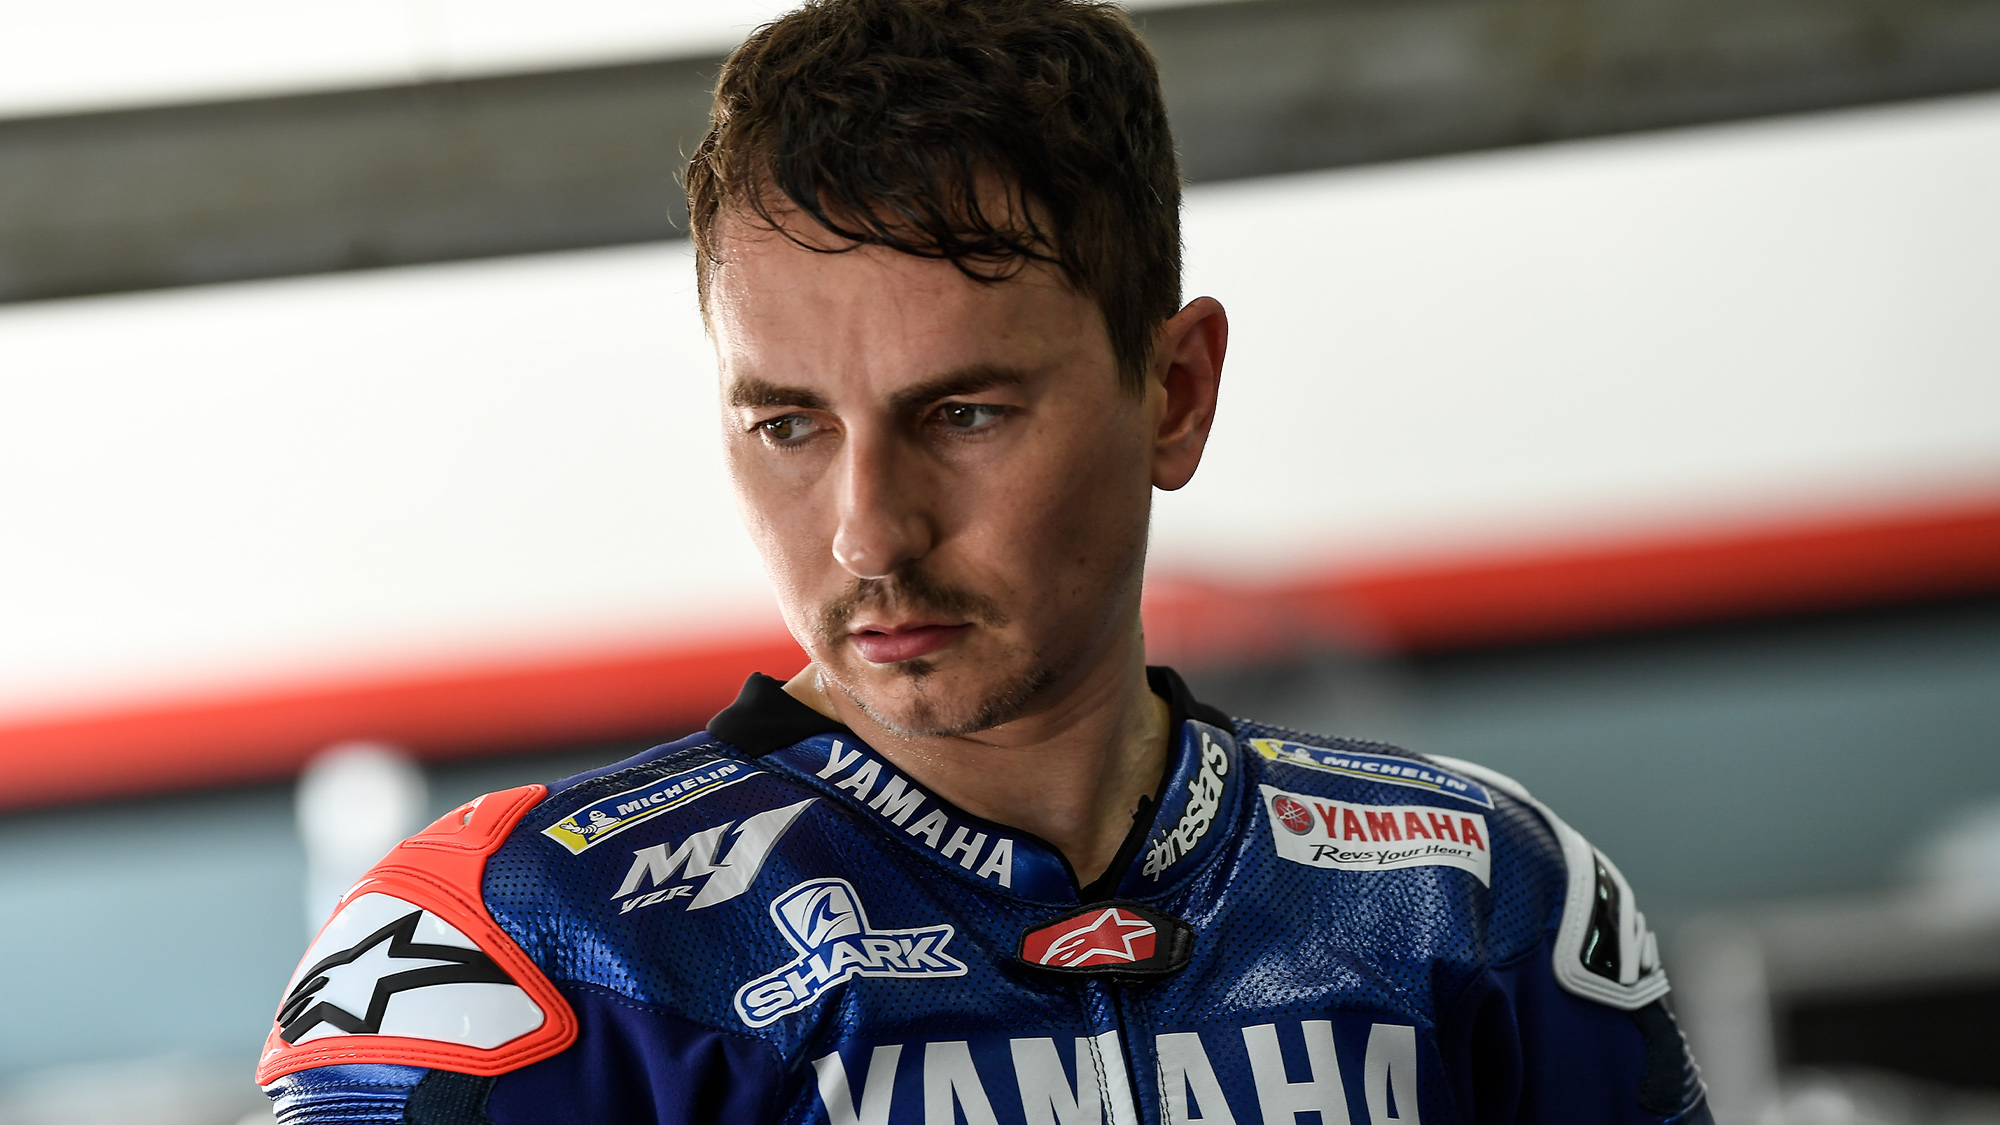 Jorge Lorenzo in his role as Yamaha test rider in 2020